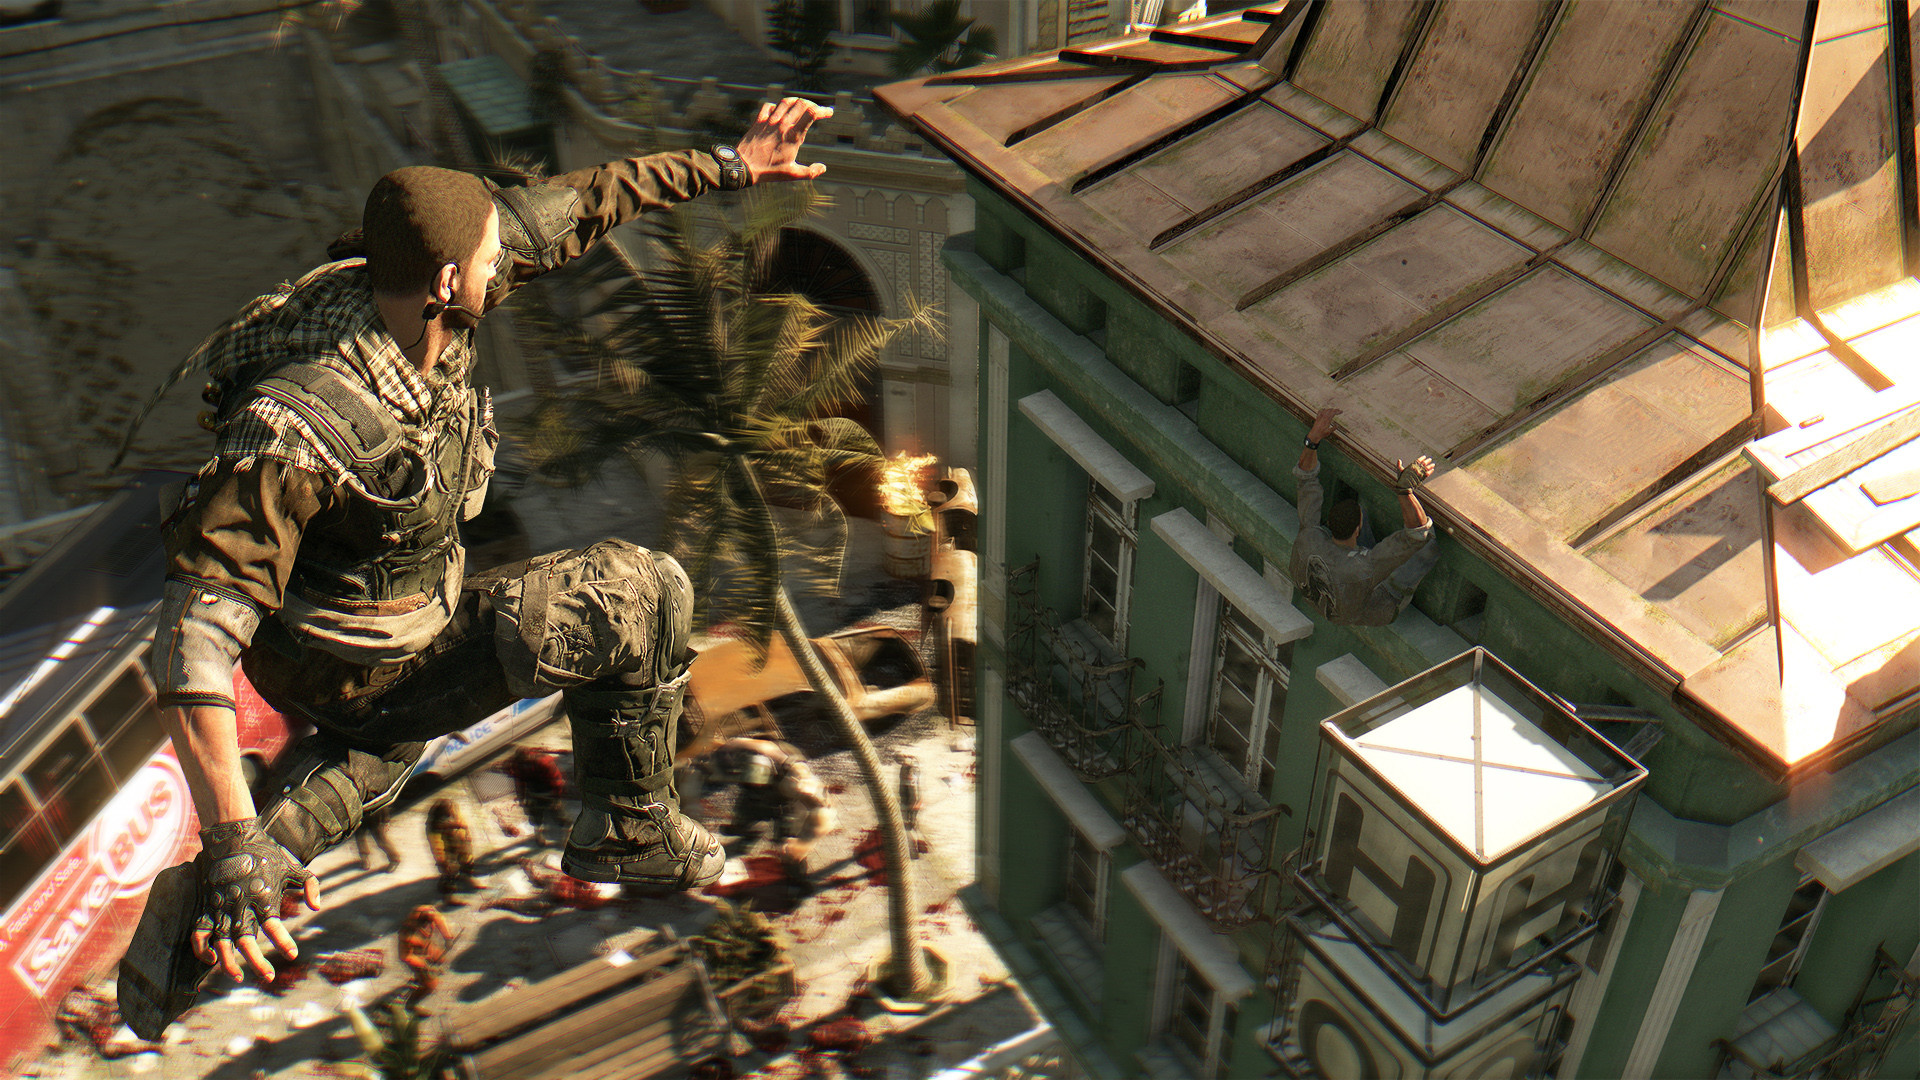 Find the best gaming PC for Dying Light